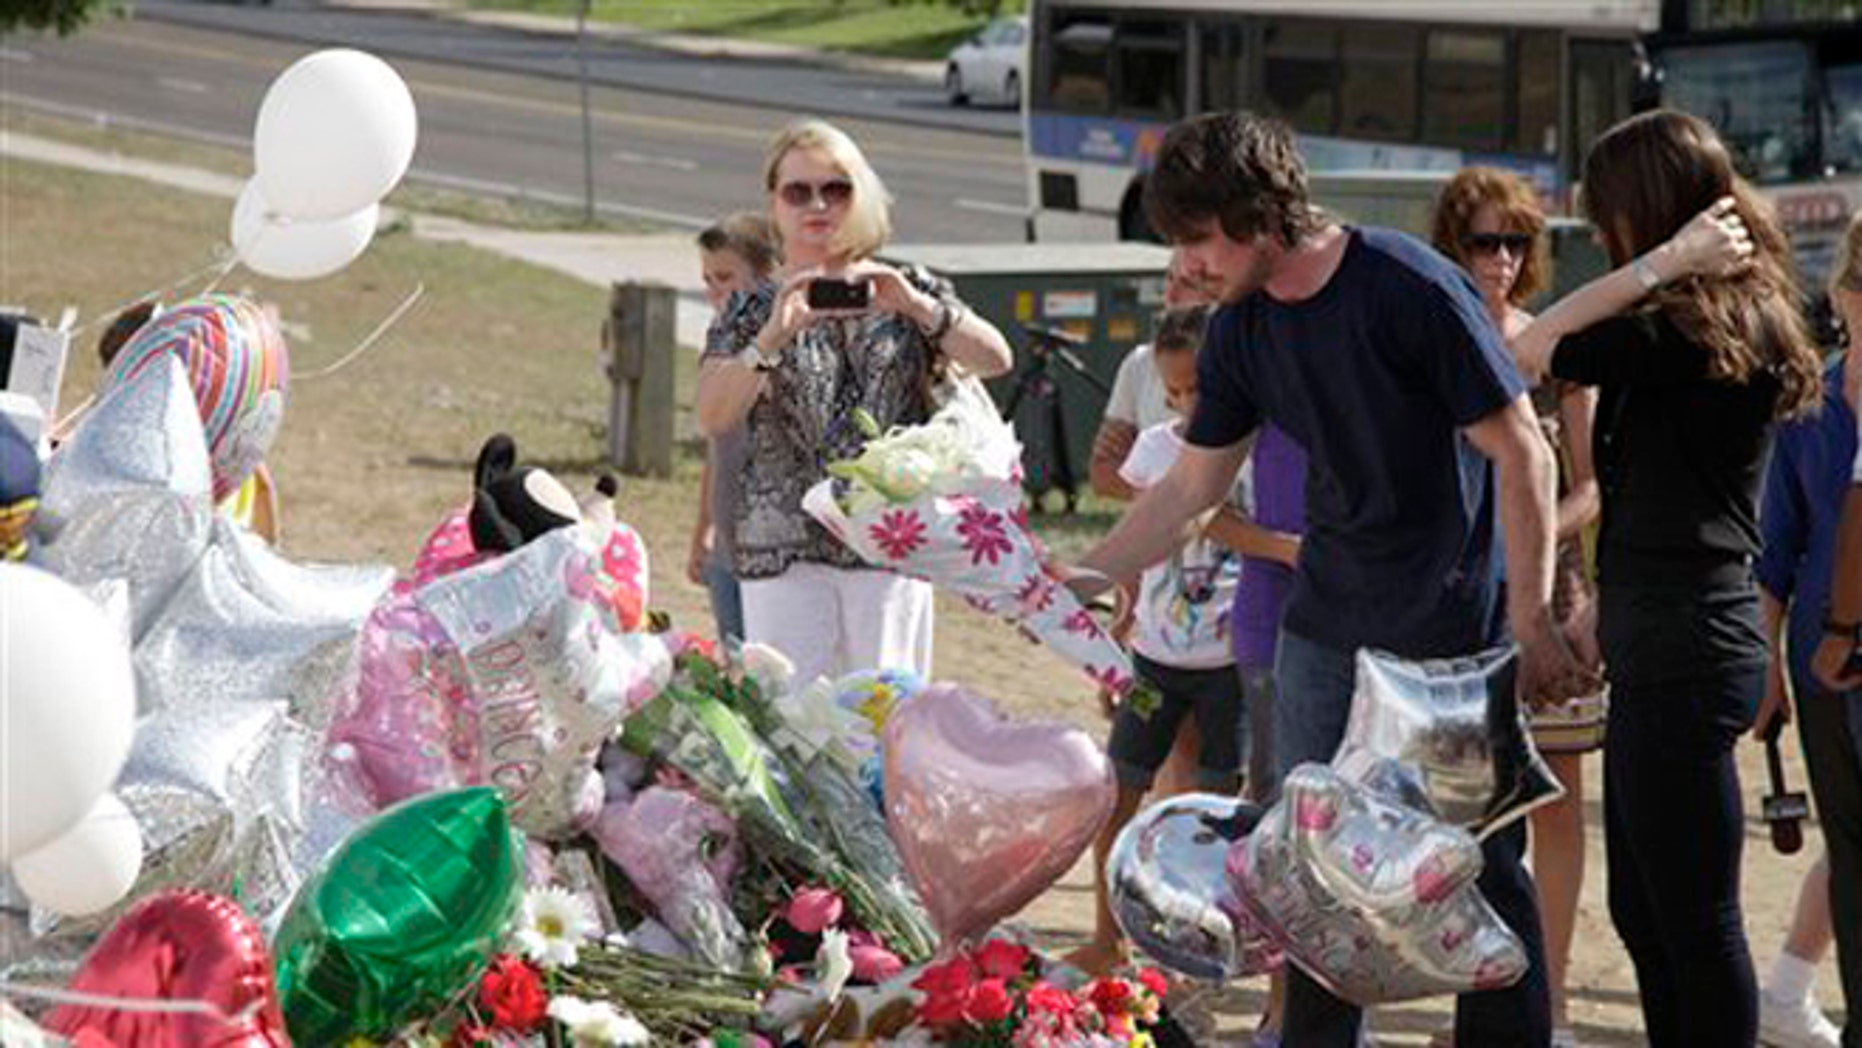 July 24, 2012: Actor Christian Bale, second right, and his wife Sibi Blazic, right, place flowers on a memorial to the victims of Friday's mass shooting in Aurora, Colo.